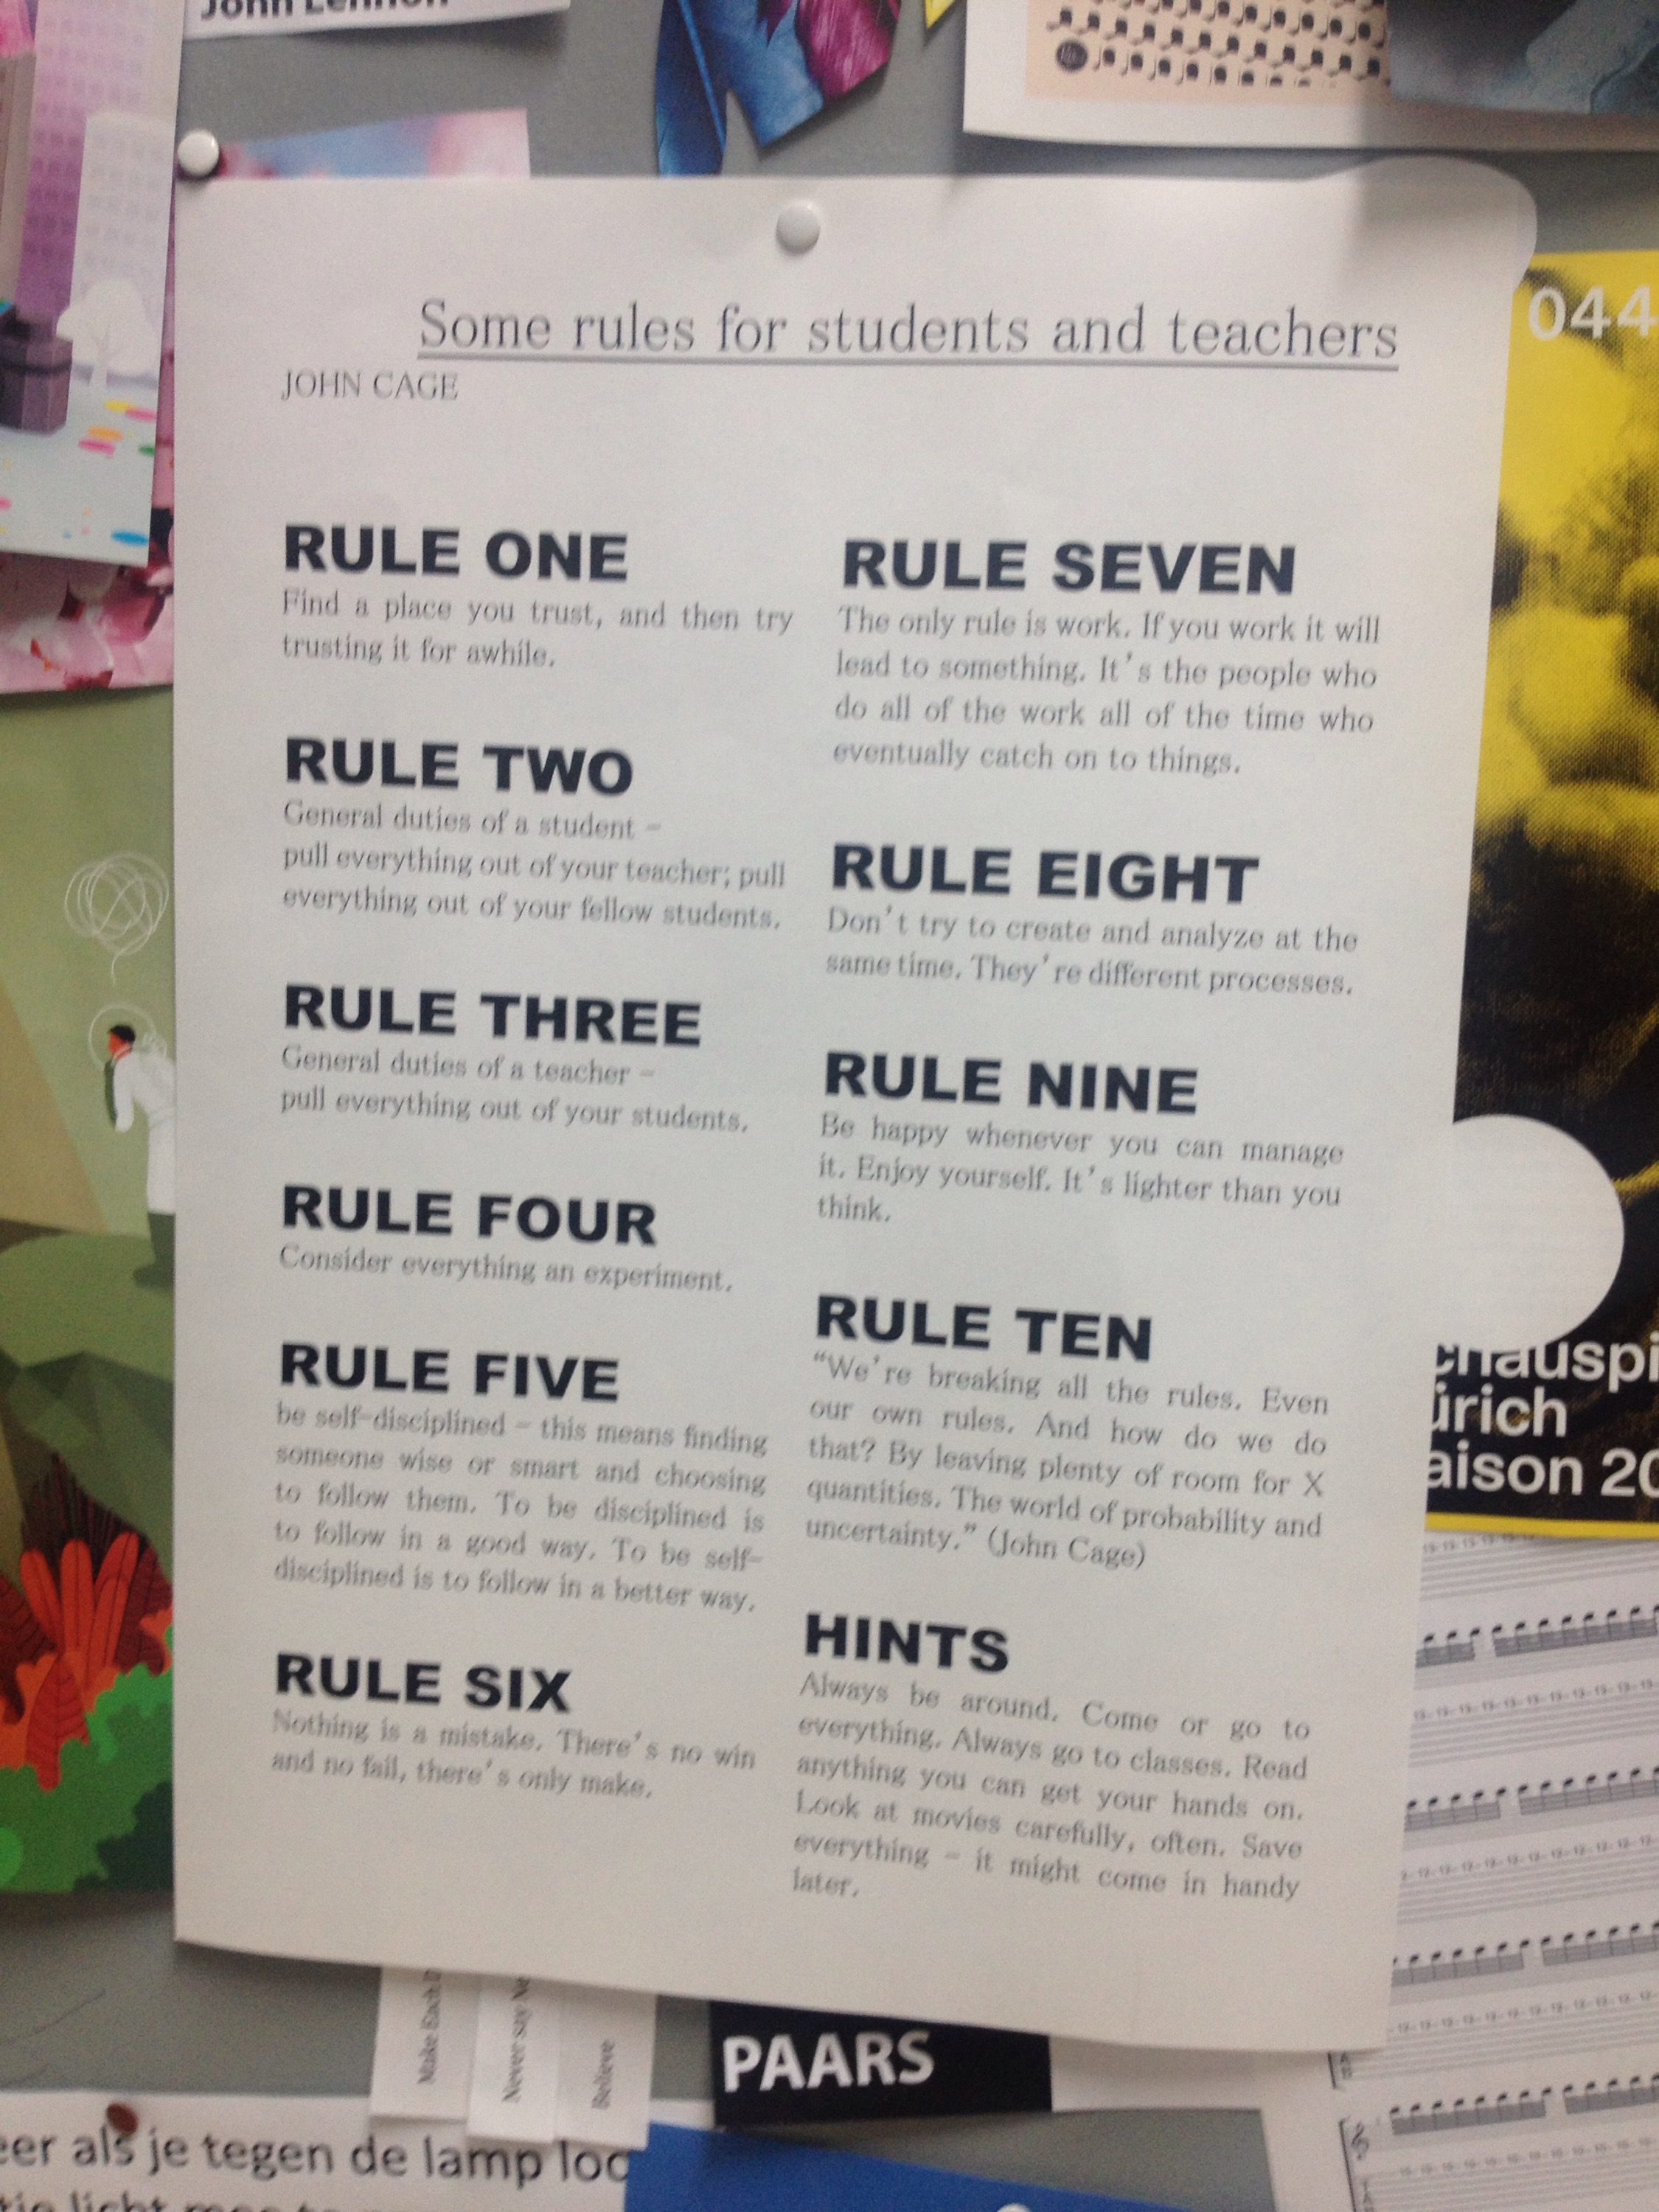 The ten rules by John Cage